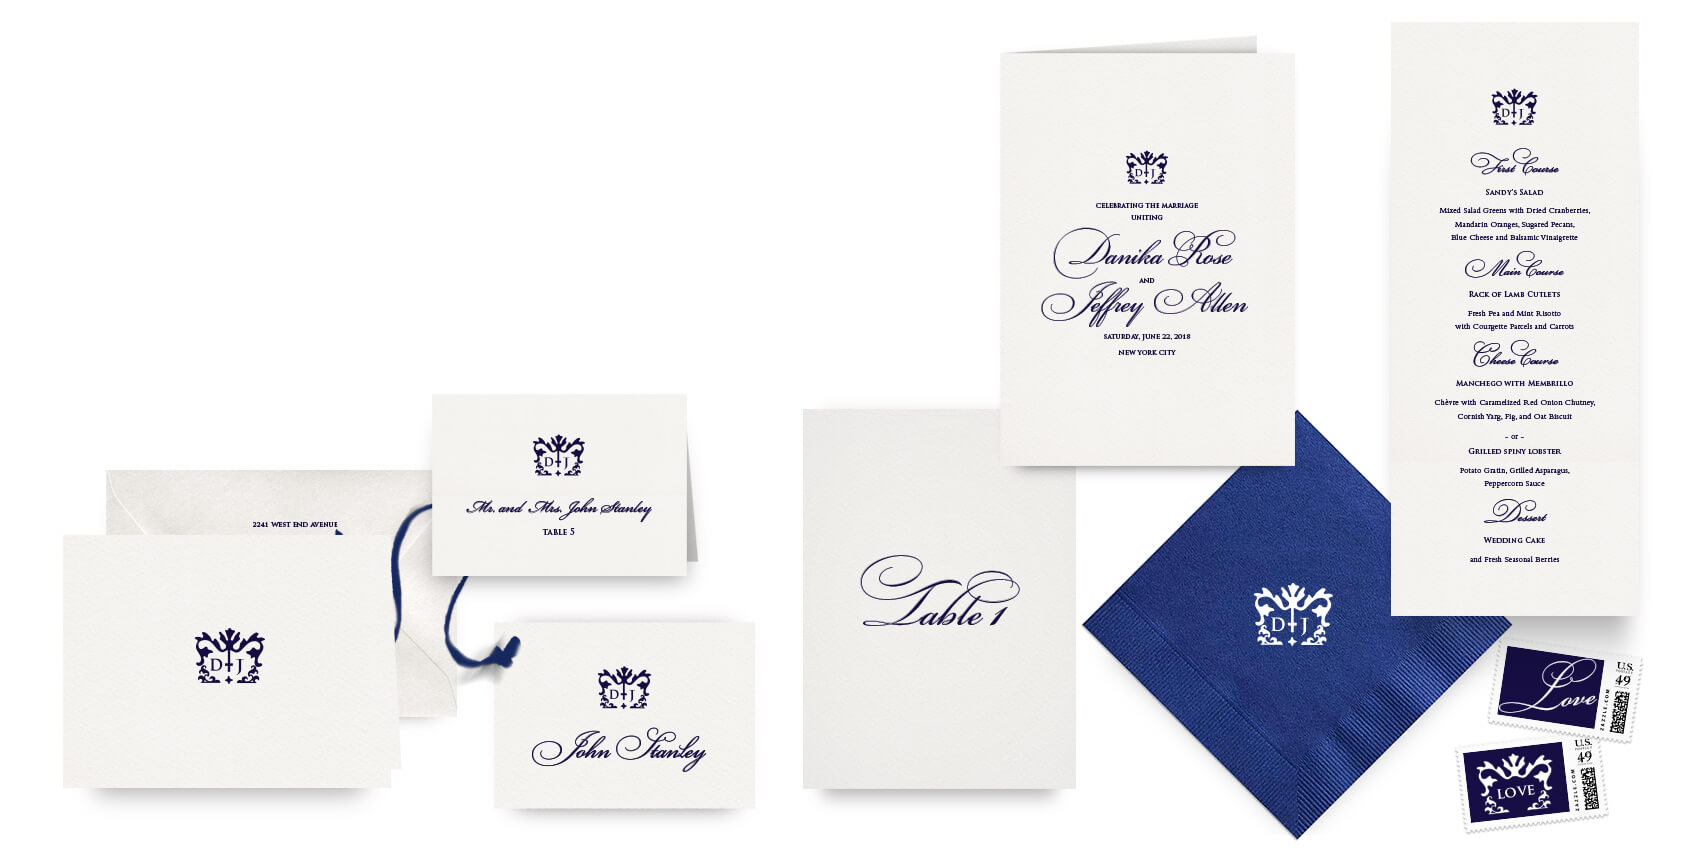 Classic navy menus, programs and wedding accessories